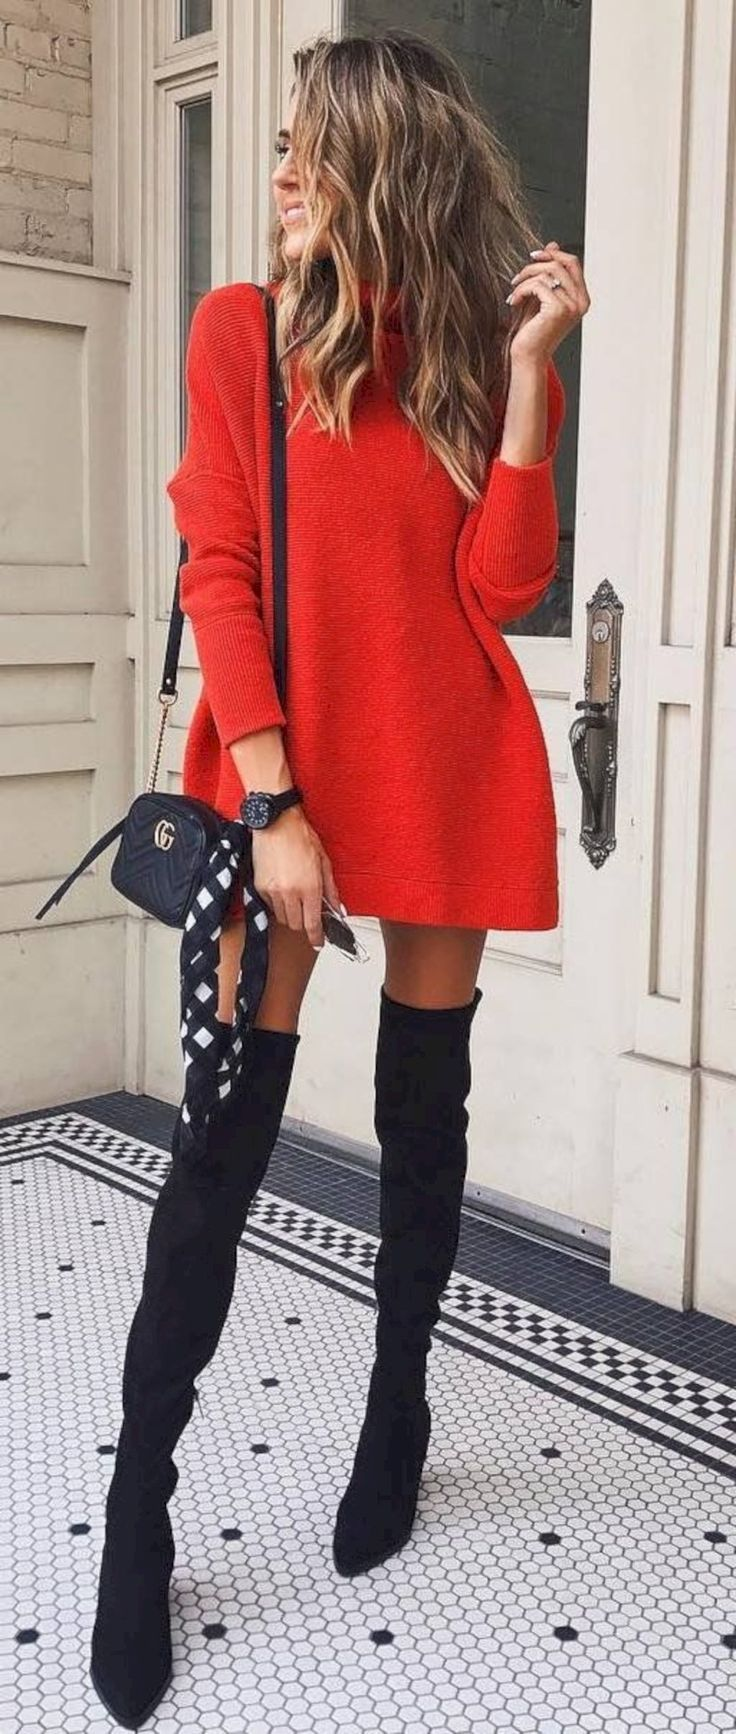 Awesome 31 Outfit Ideas to Dress Up Wearing Over the Knee Boots http://clothme.net/2018/02/26/31-outfit-ideas-dress-wearing-knee-boots/